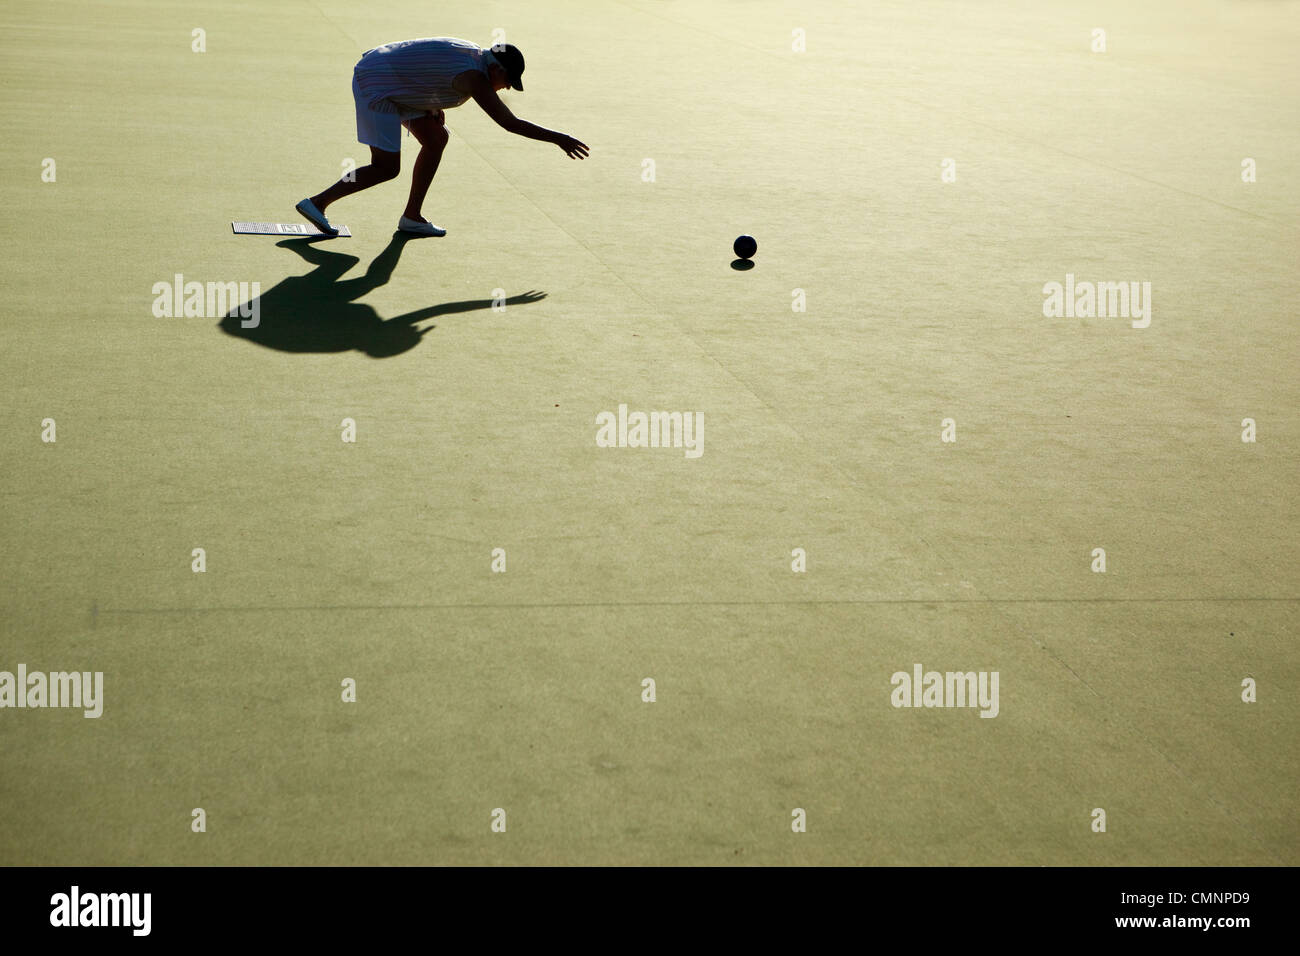 Woman playing lawn bowls. Cooktown, Queensland, Australia - Stock Image